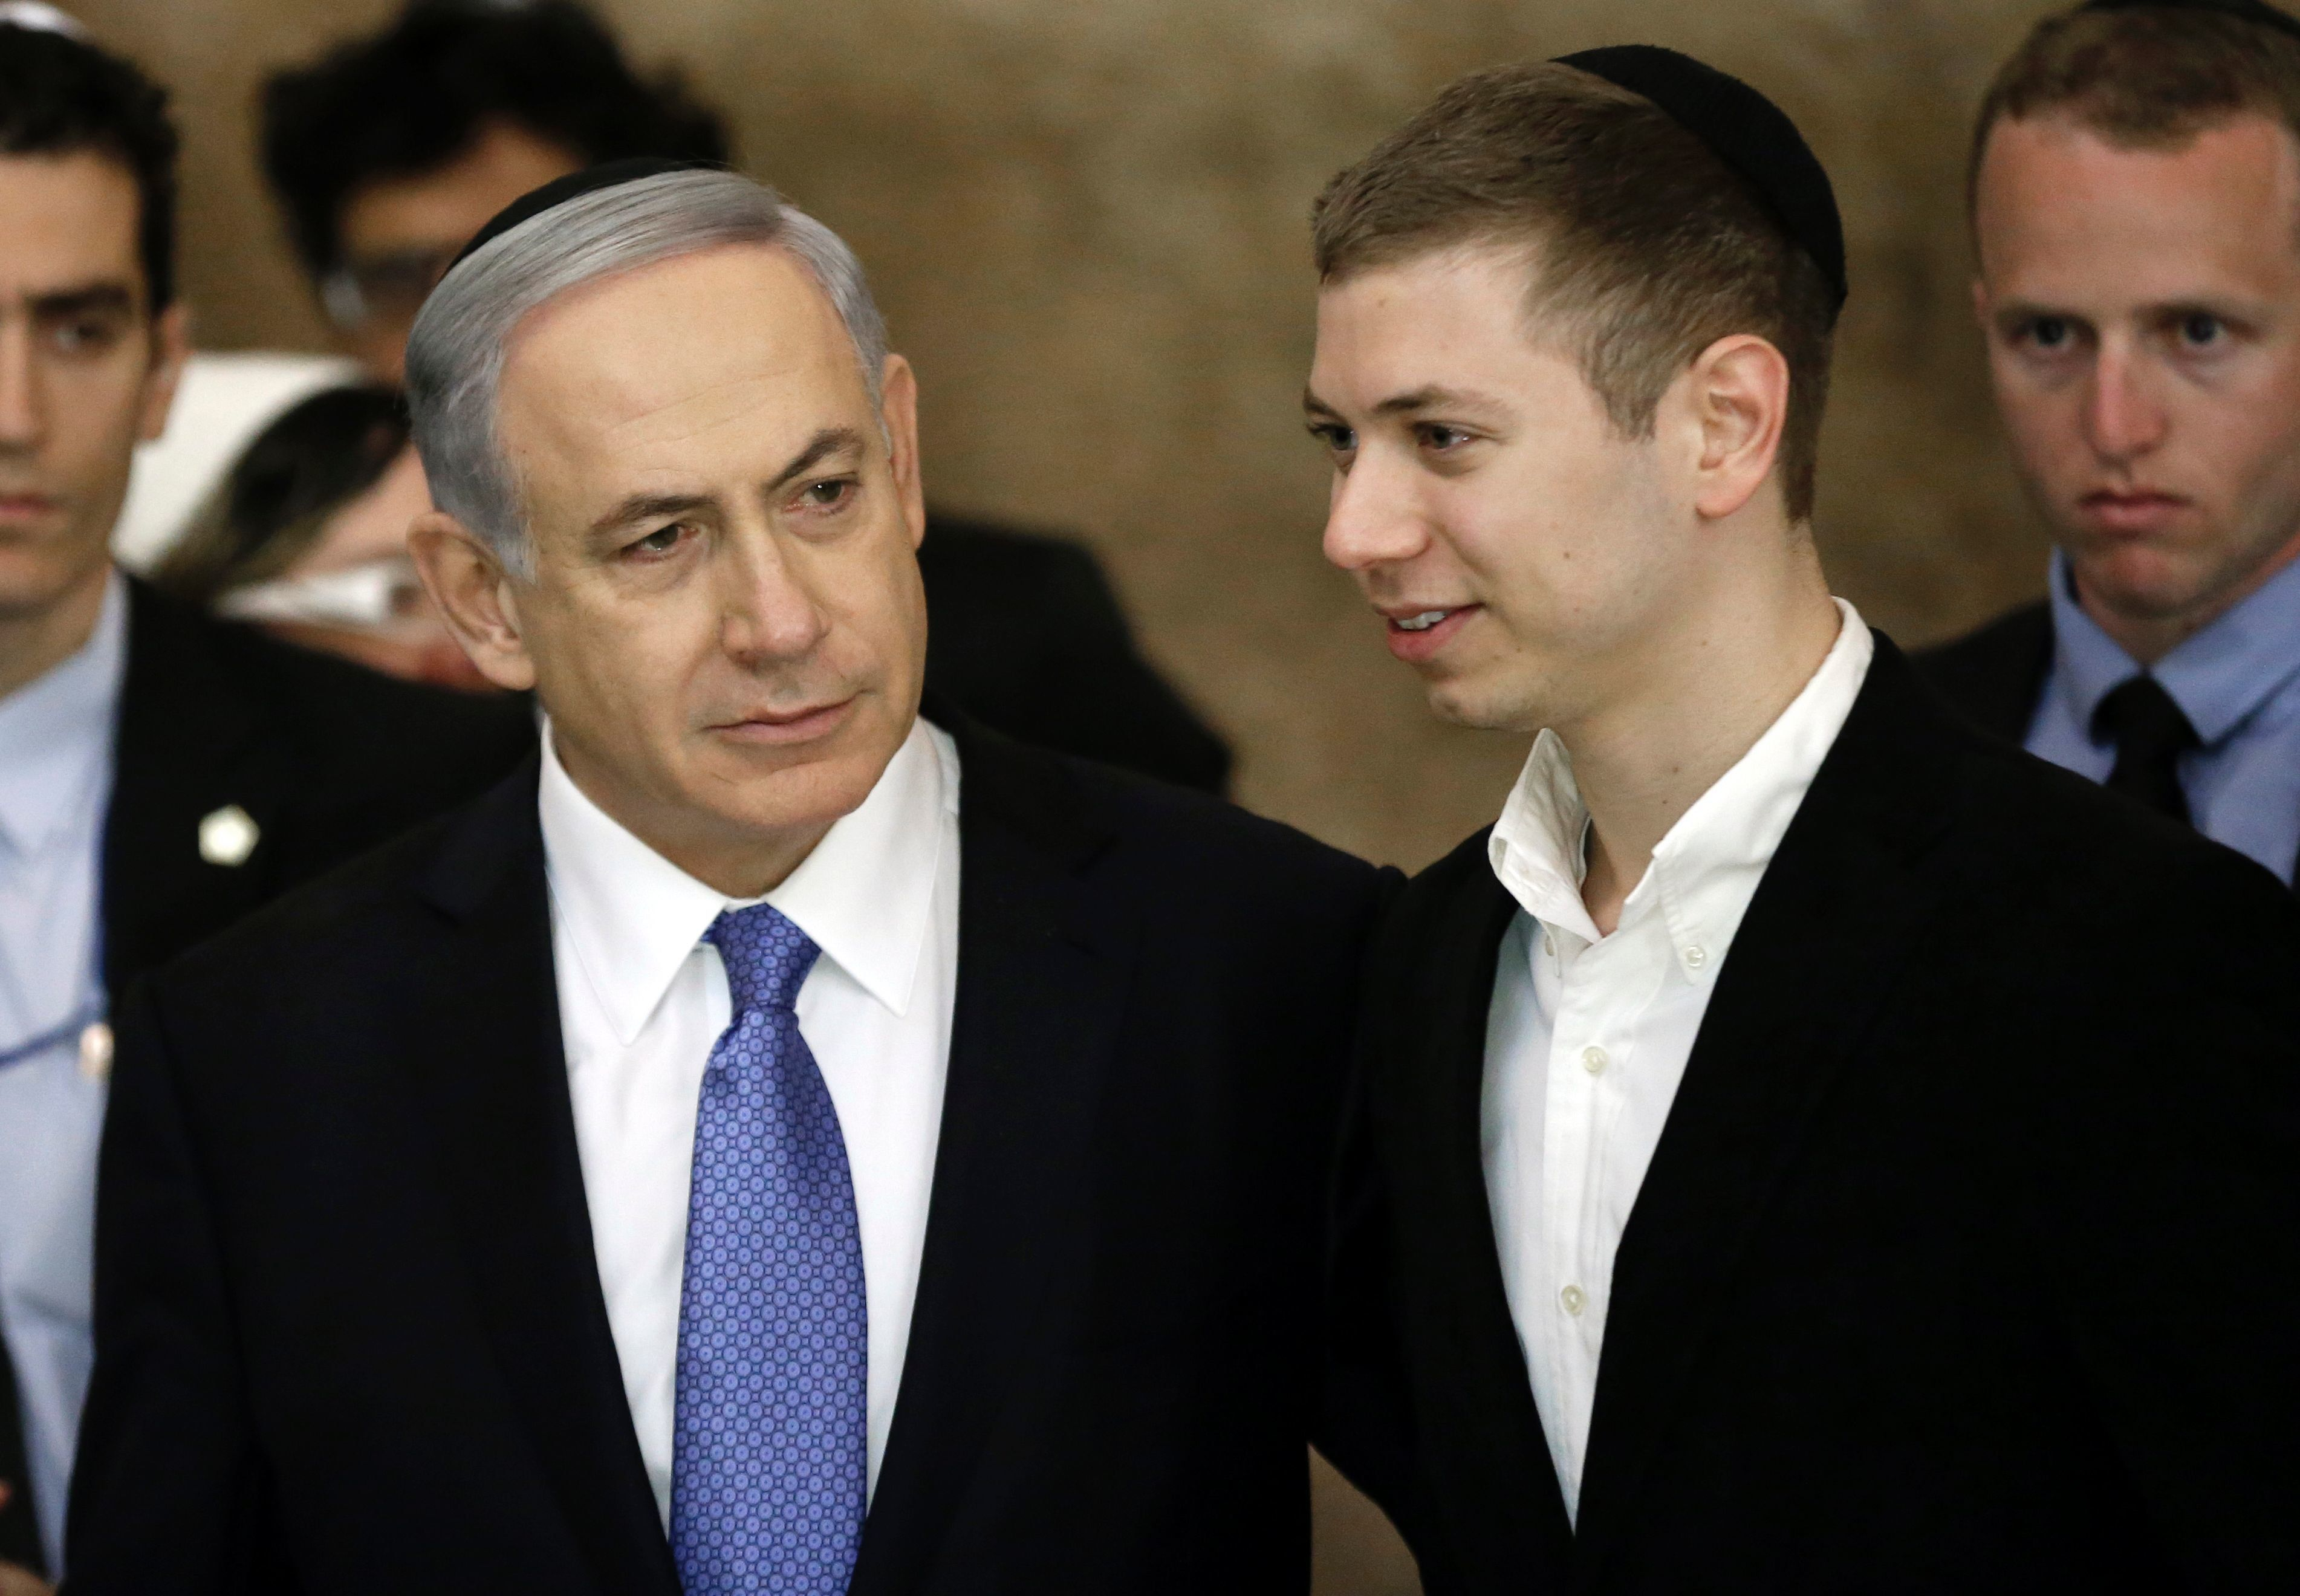 Israeli Prime Minister Benjamin Netanyahu (L) and his son Yair visit, on March 18, 2015, the Wailing Wall in Jerusalem following his party Likud's victory in Israel's general election. Netanyahu swept to a stunning election victory, securing a third straight term for an Israeli leader who has deepened tensions with the Palestinians and infuriated key ally Washington.  AFP PHOTO / THOMAS COEX / AFP / THOMAS COEX        (Photo credit should read THOMAS COEX/AFP/Getty Images)